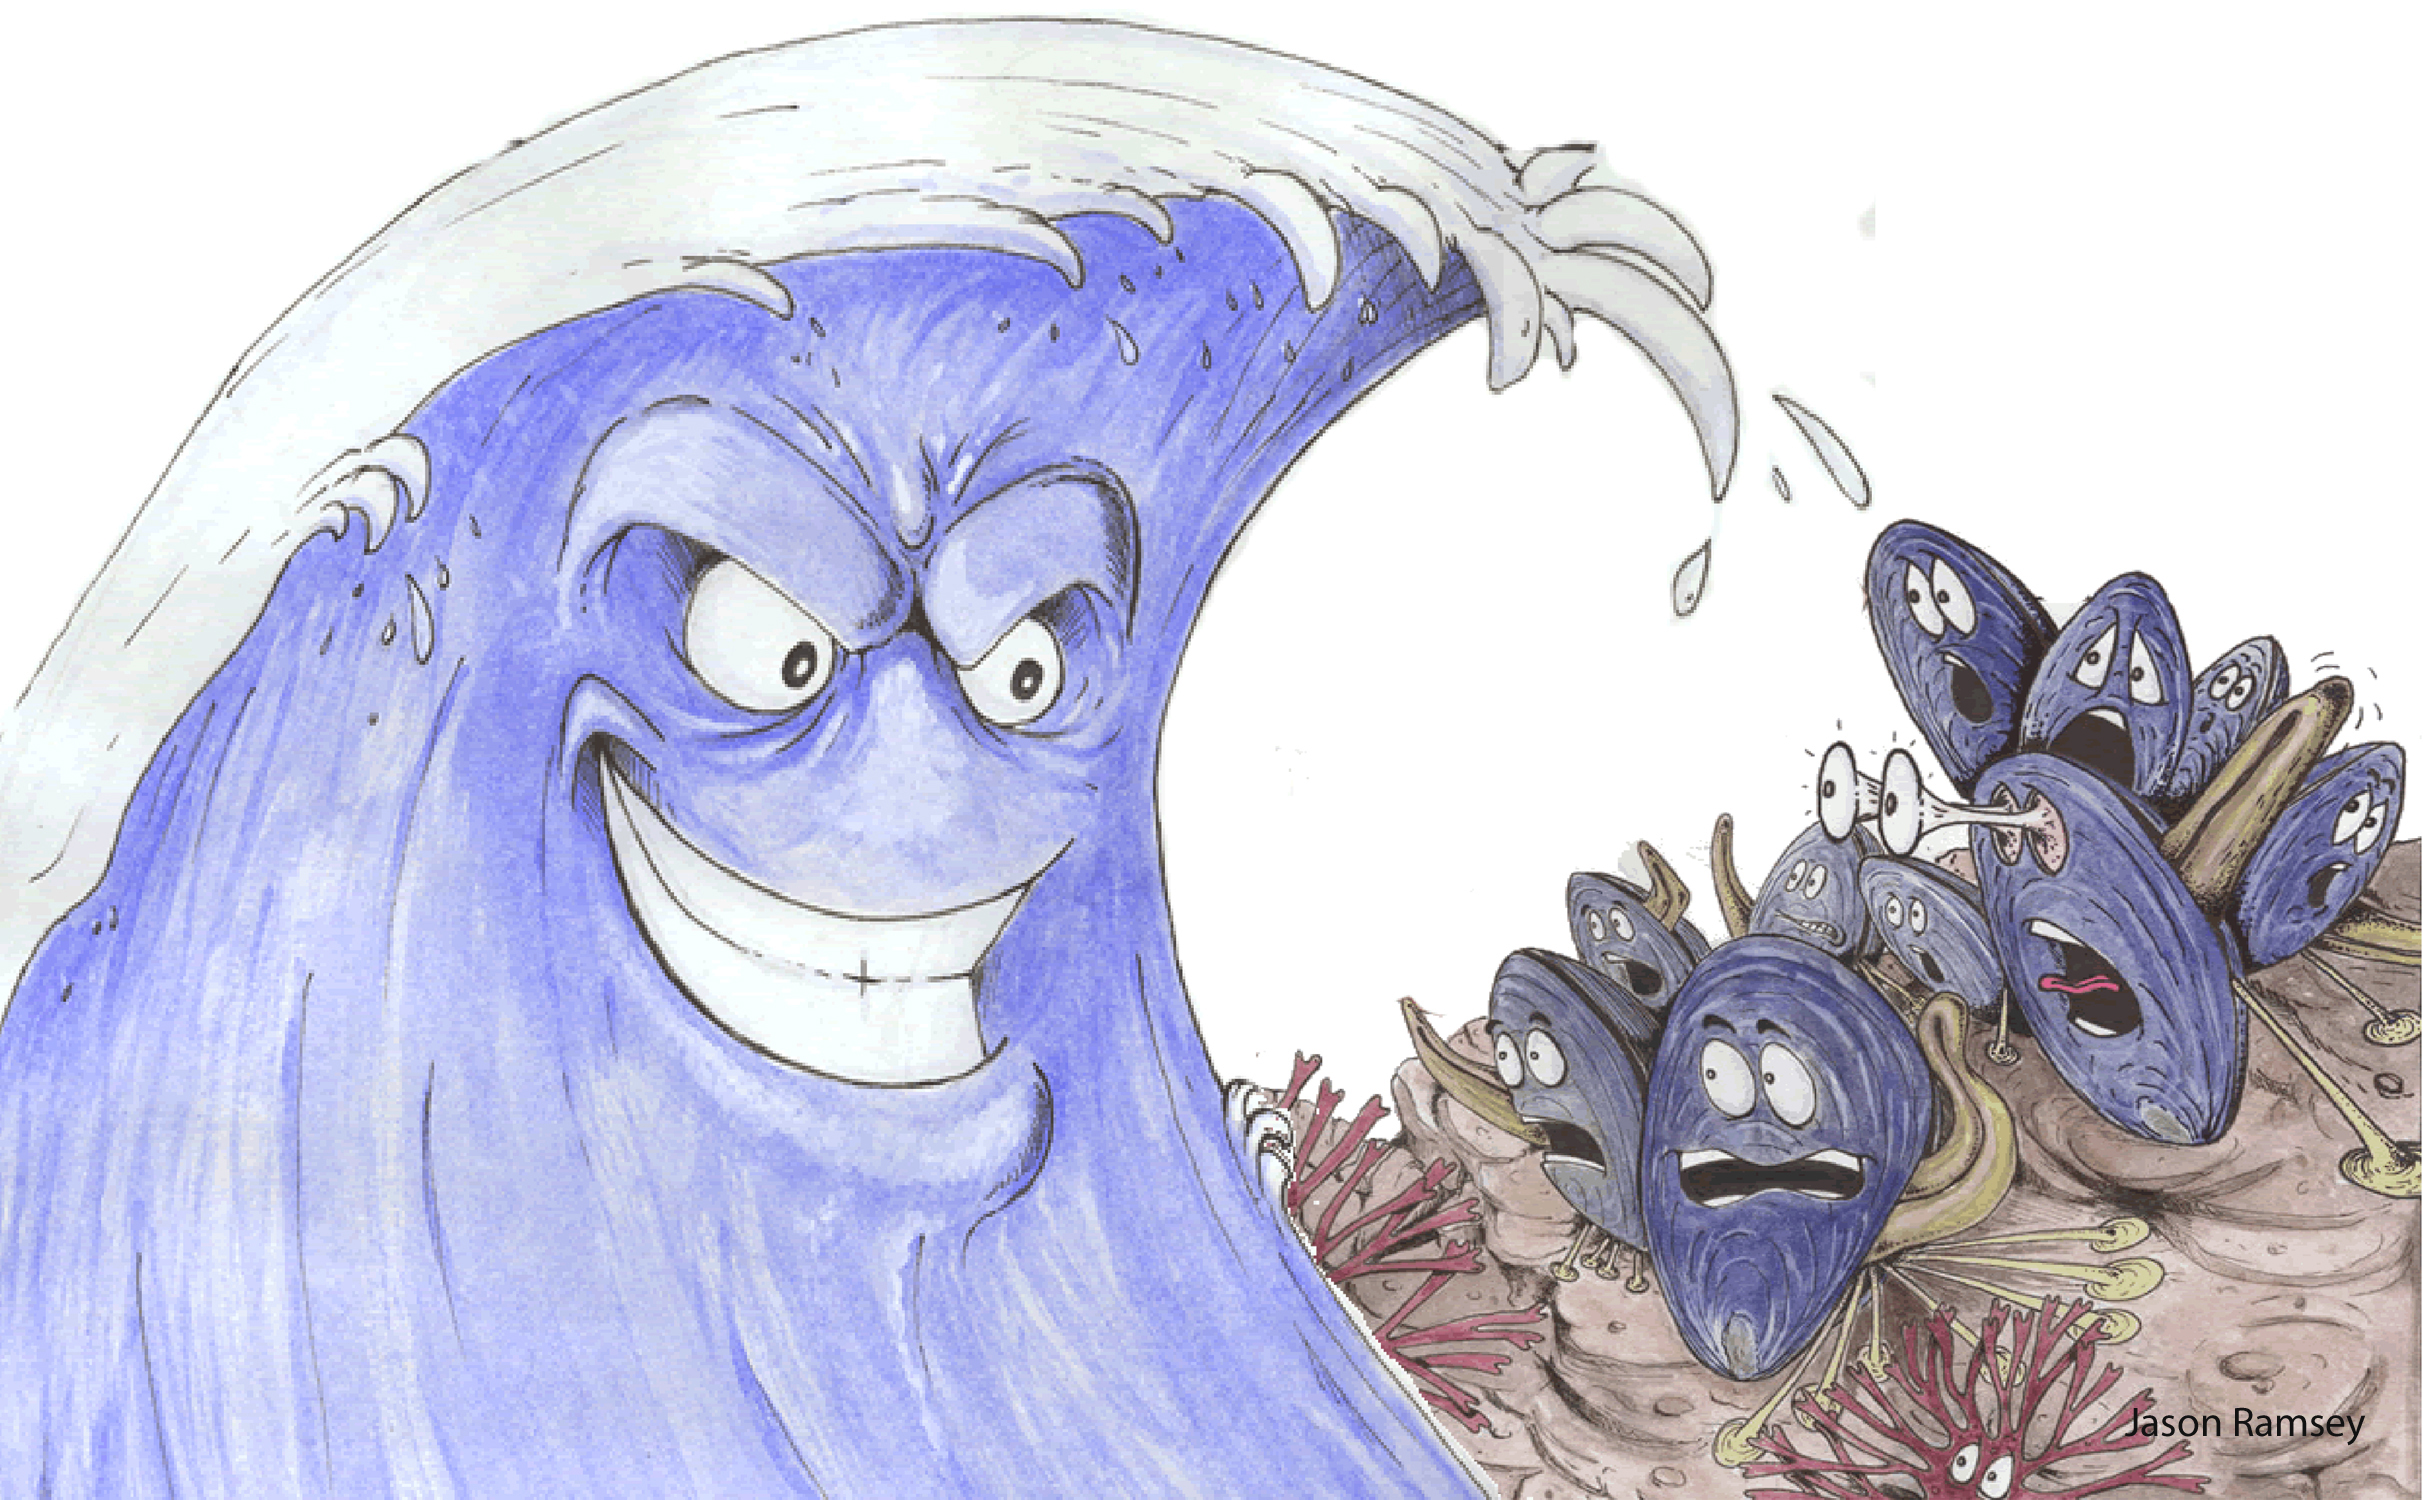 Drawing of wave with menancing face and startled mussels on shore